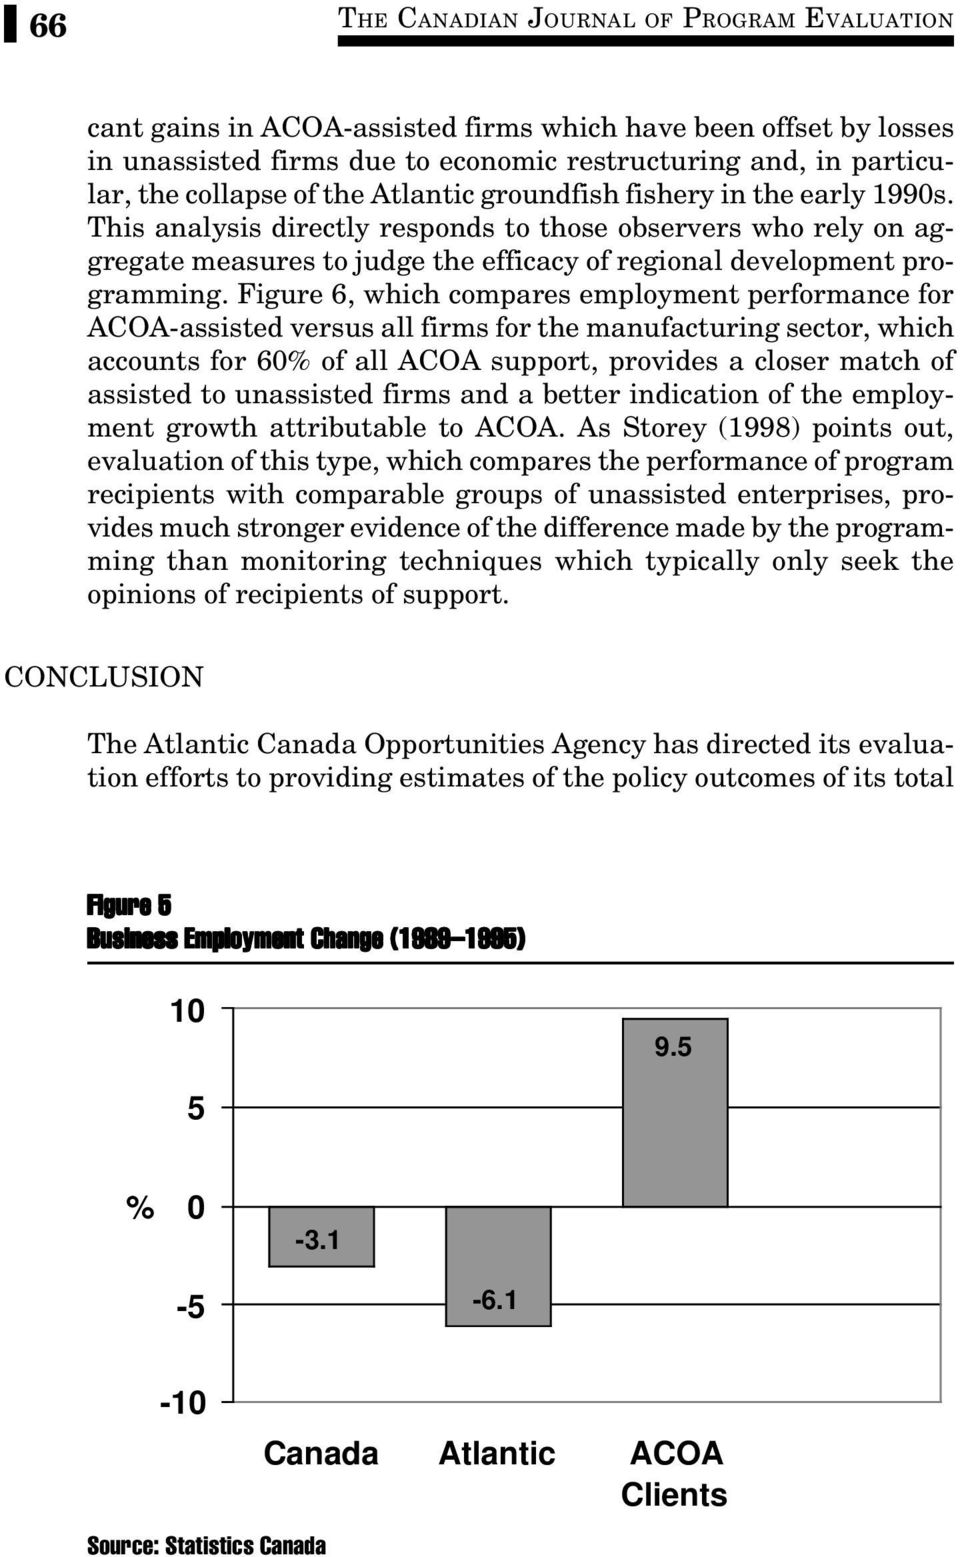 Figure 6, which compares employment performance for ACOA-assisted versus all firms for the manufacturing sector, which accounts for 60% of all ACOA support, provides a closer match of assisted to